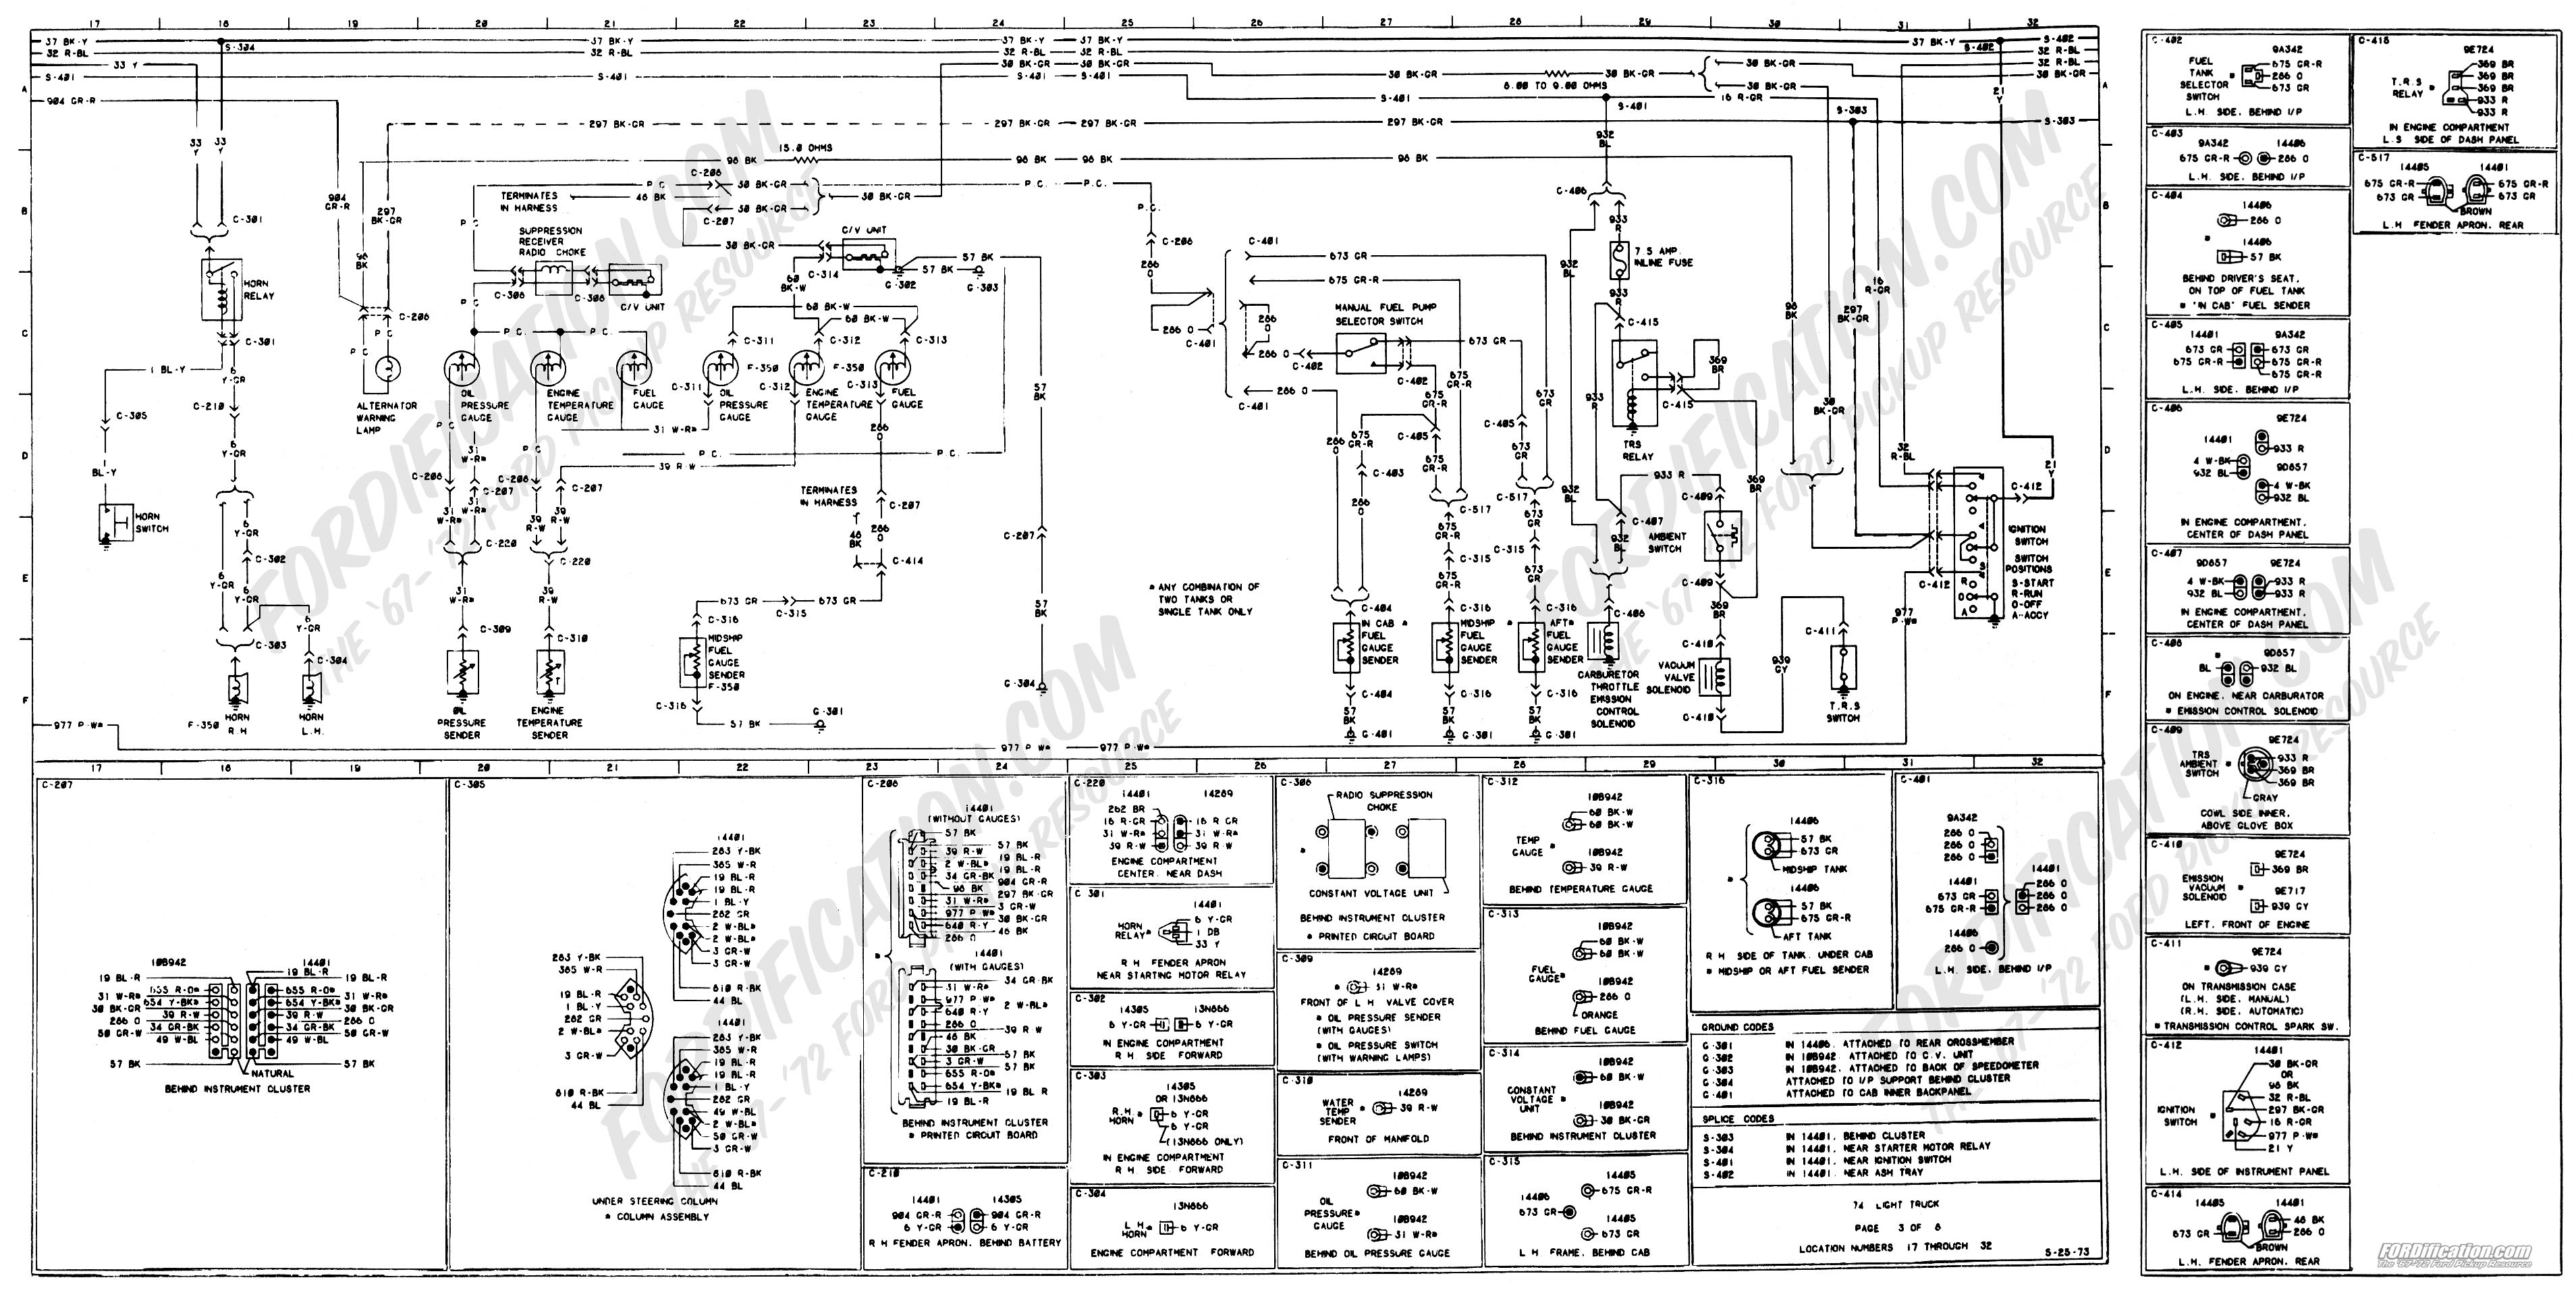 1978 dodge truck ignition wiring diagram 8141 00 1973 1979 ford diagrams u0026 schematics fordification nettruck 13